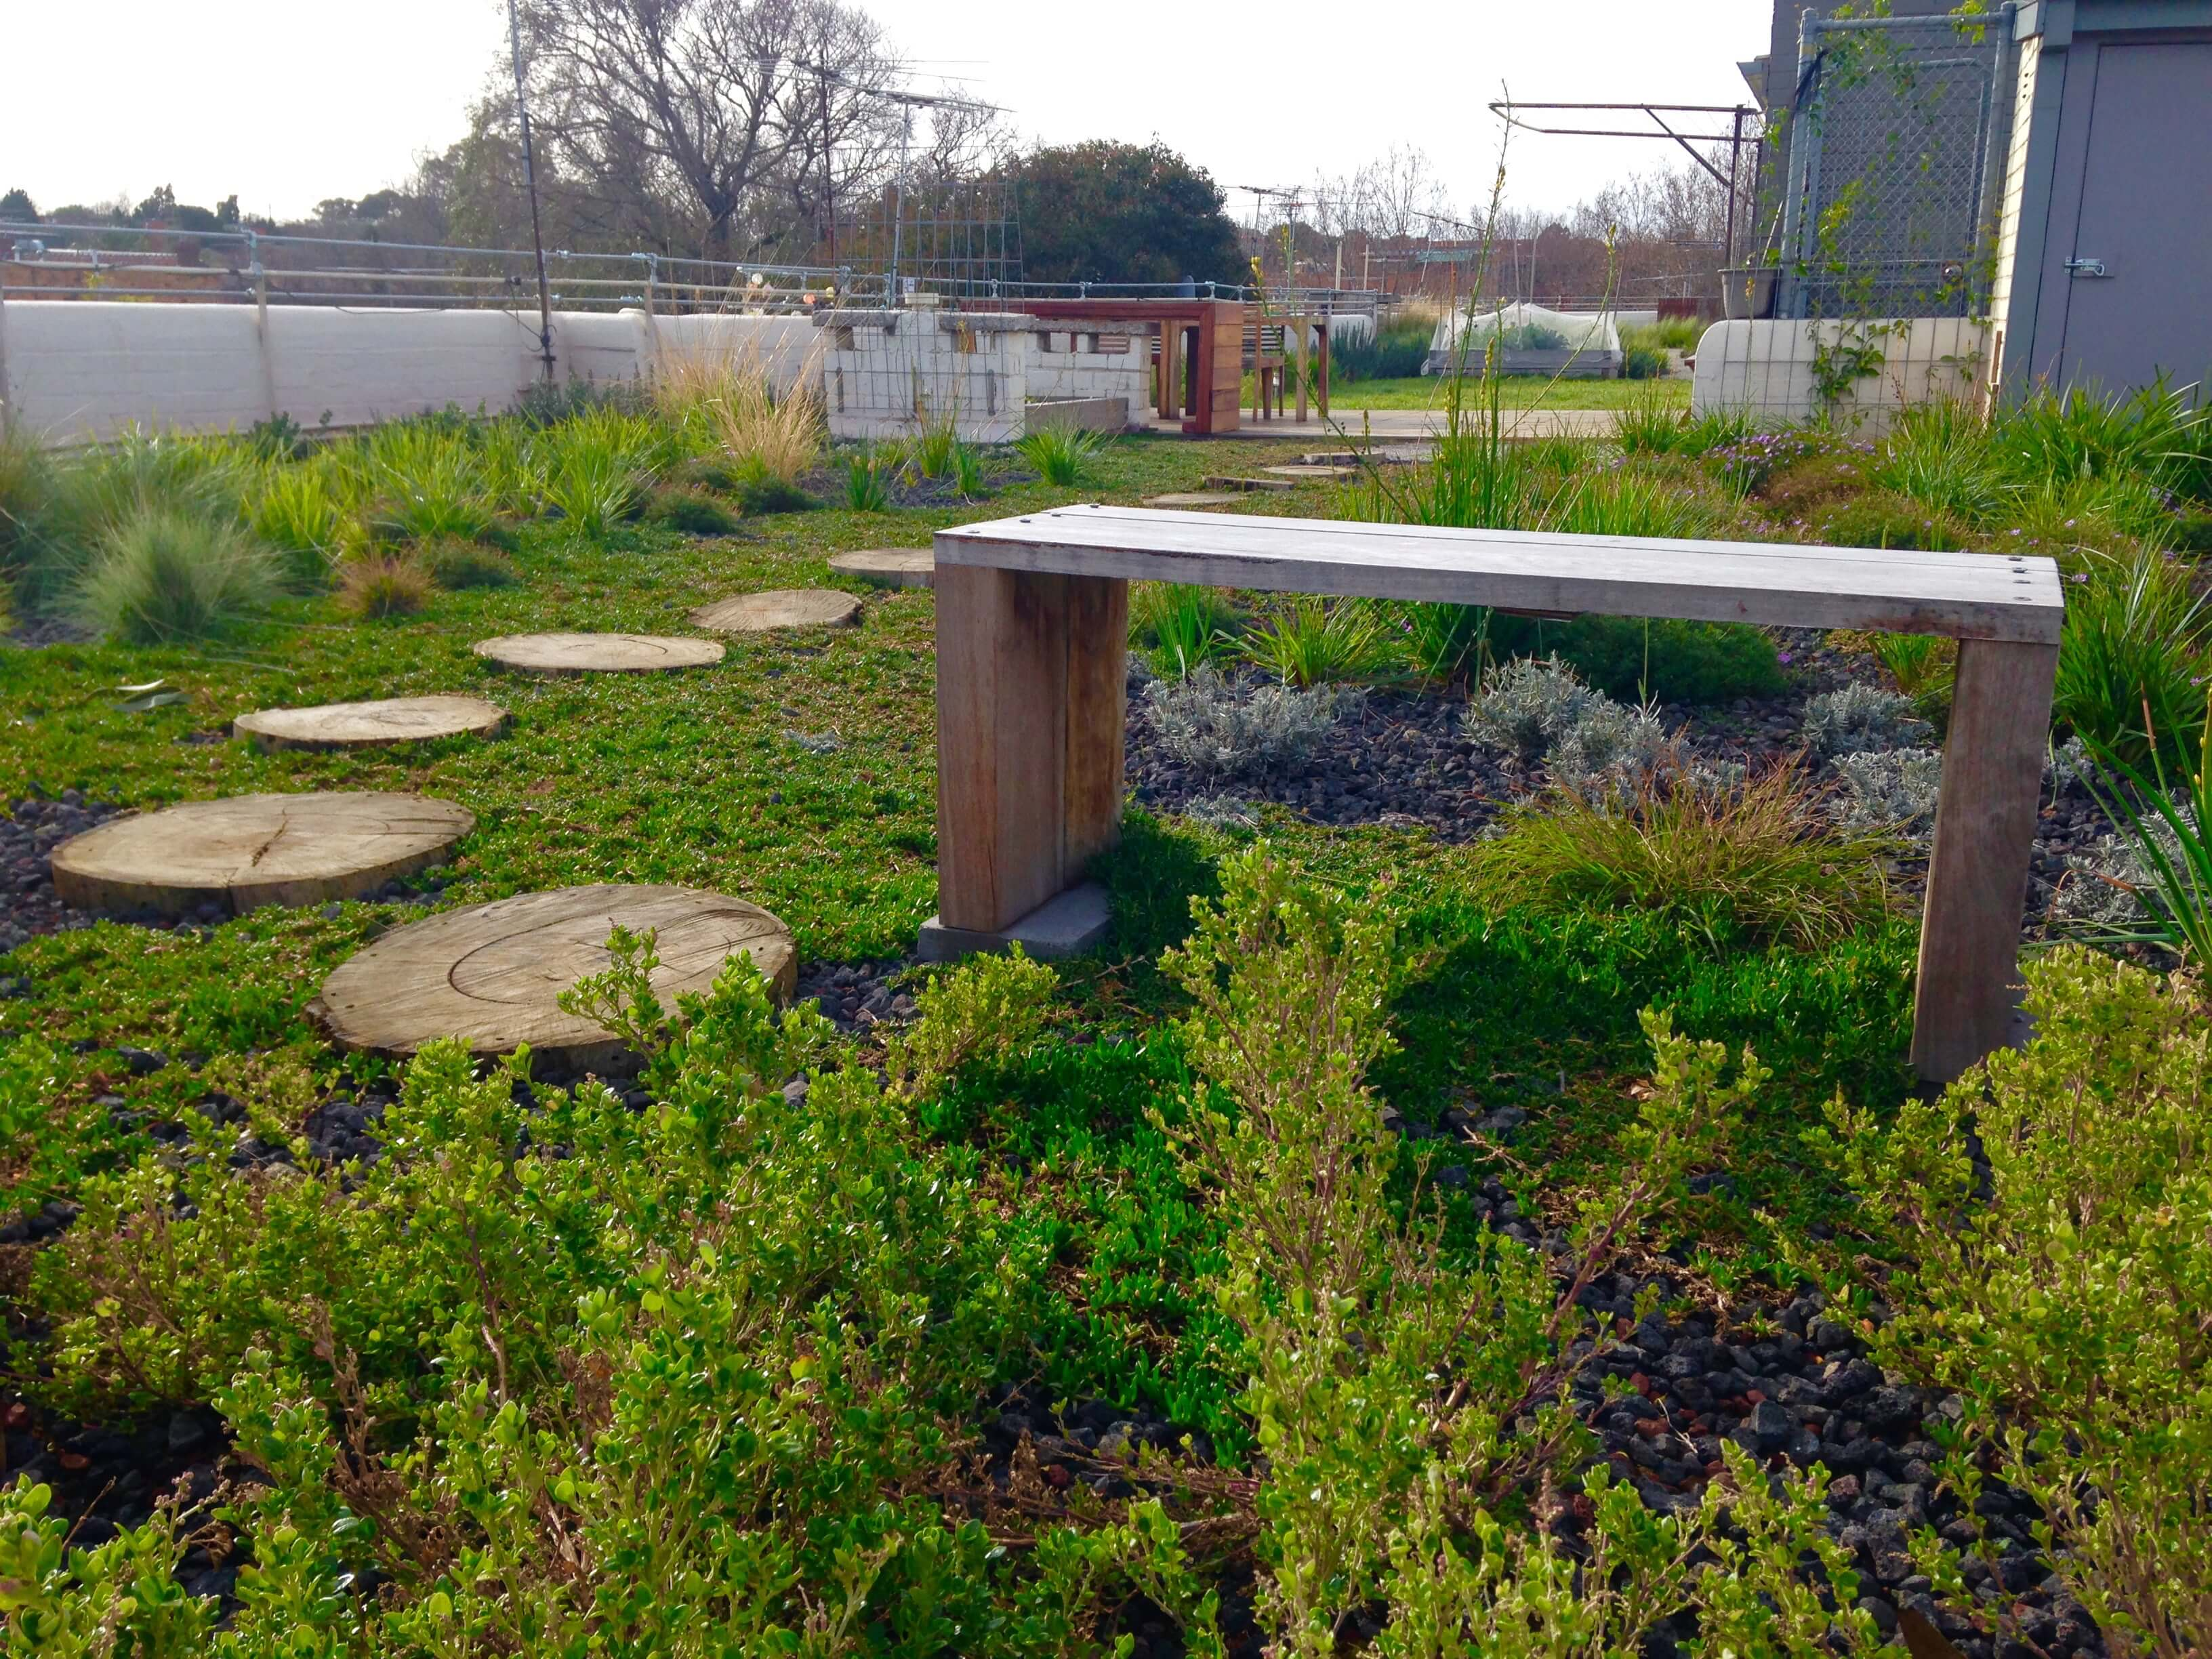 Green Roof in the City